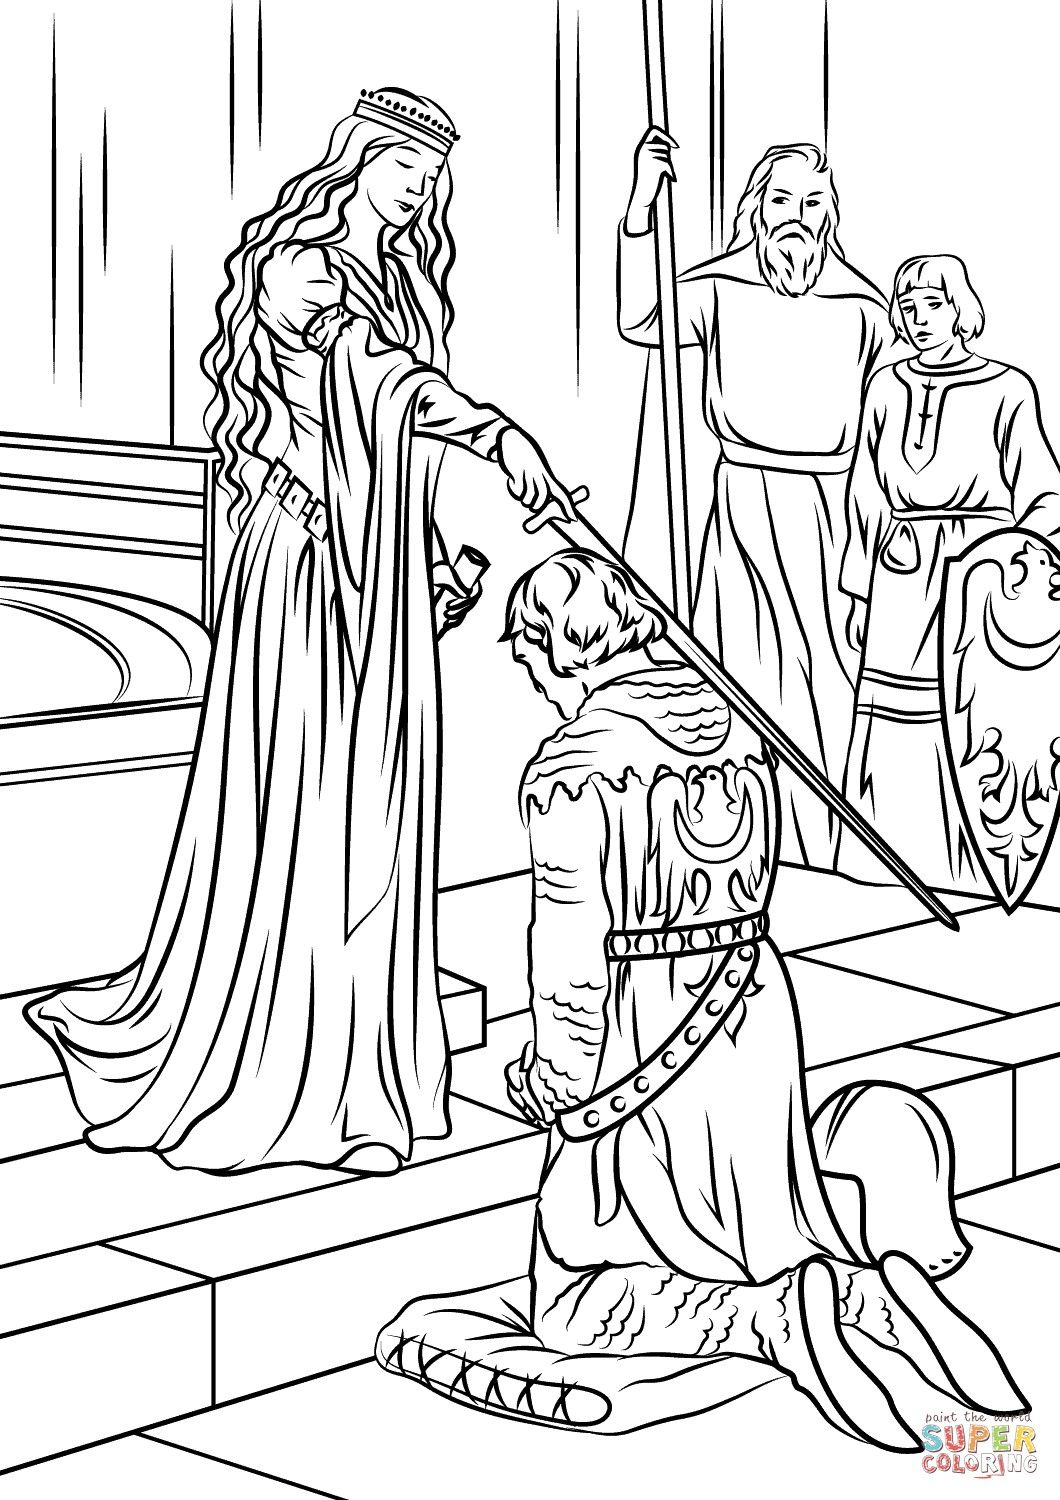 Warrior Princess Coloring Pages From The Thousand Pictures On The Web With Regards To Warrio Princess Coloring Pages Princess Coloring Cartoon Coloring Pages